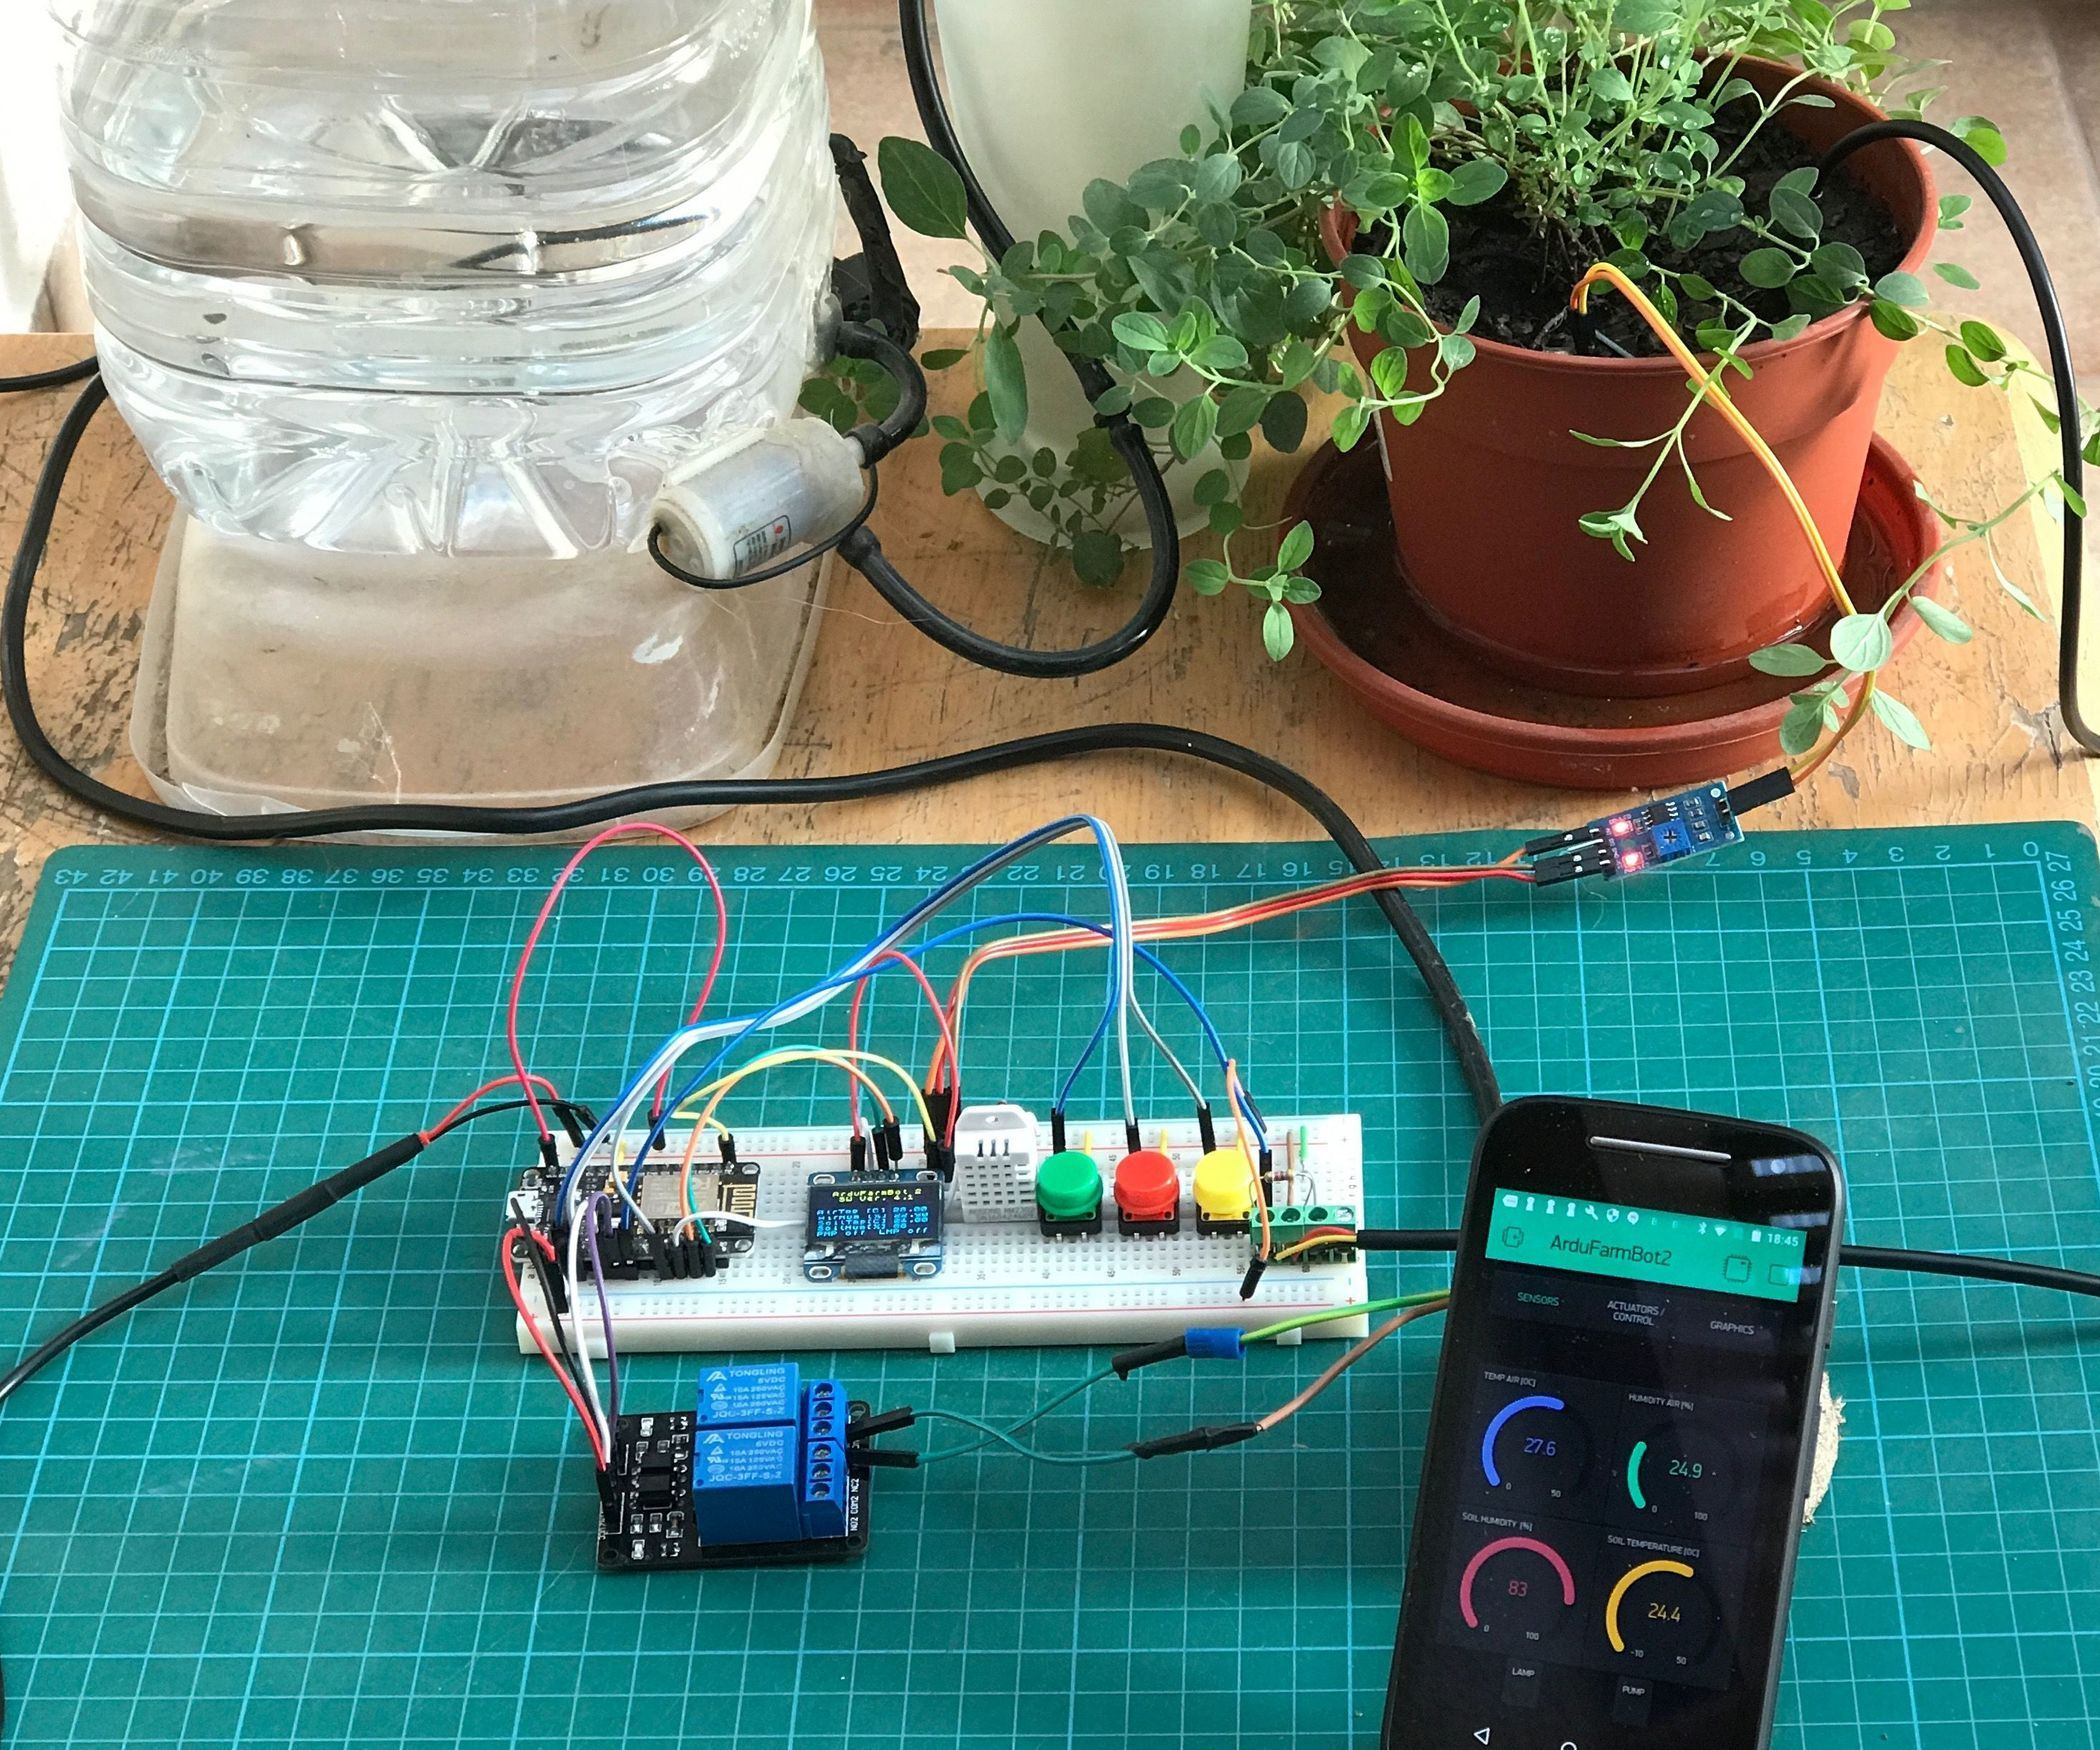 Automatic Gardening System With Nodemcu And Blynk The Ardufarmbot Keep To Beat Heart Rate Monitor Tutorial Pitop 2